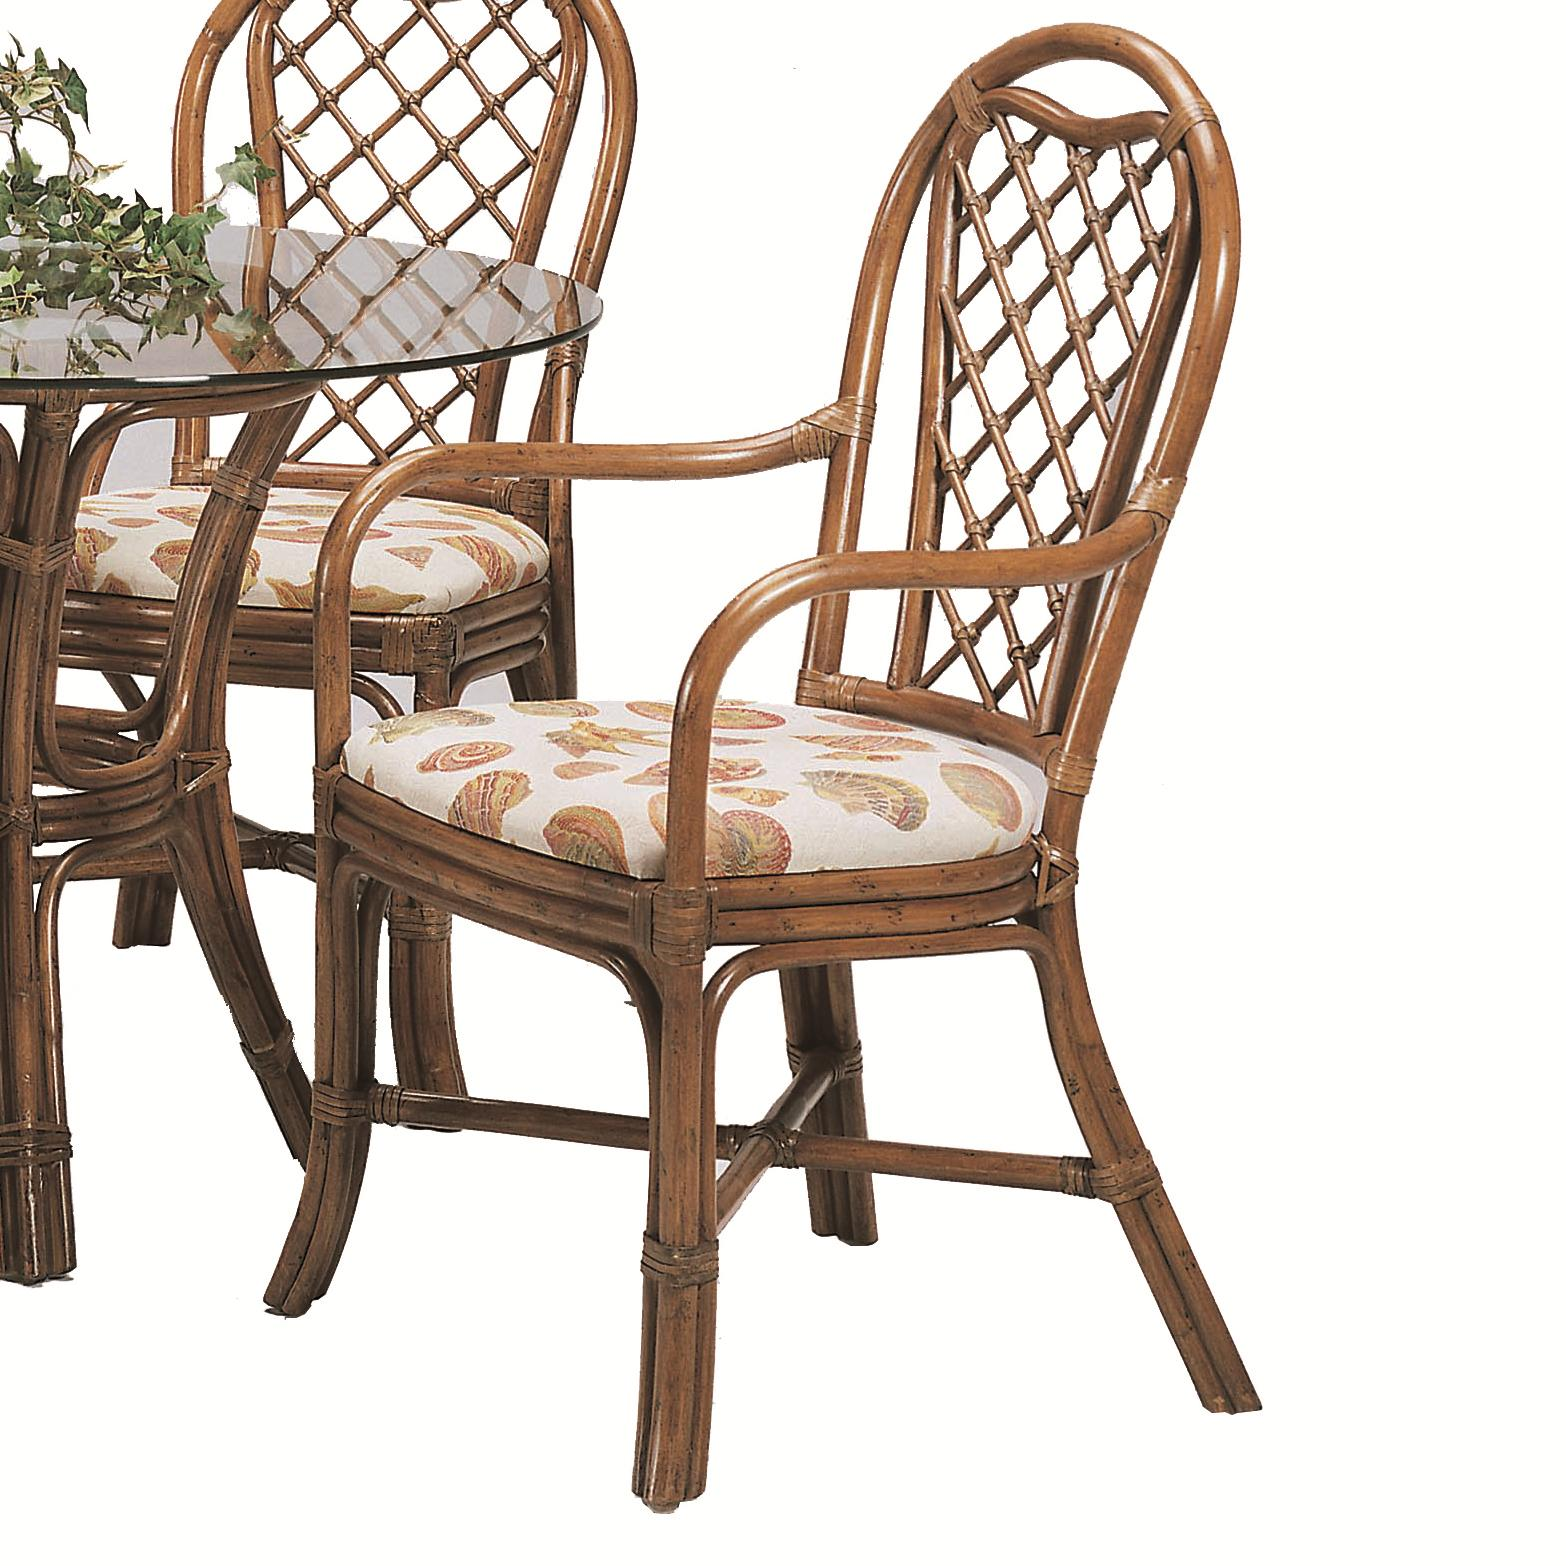 979 Arm Chair by Braxton Culler at Esprit Decor Home Furnishings